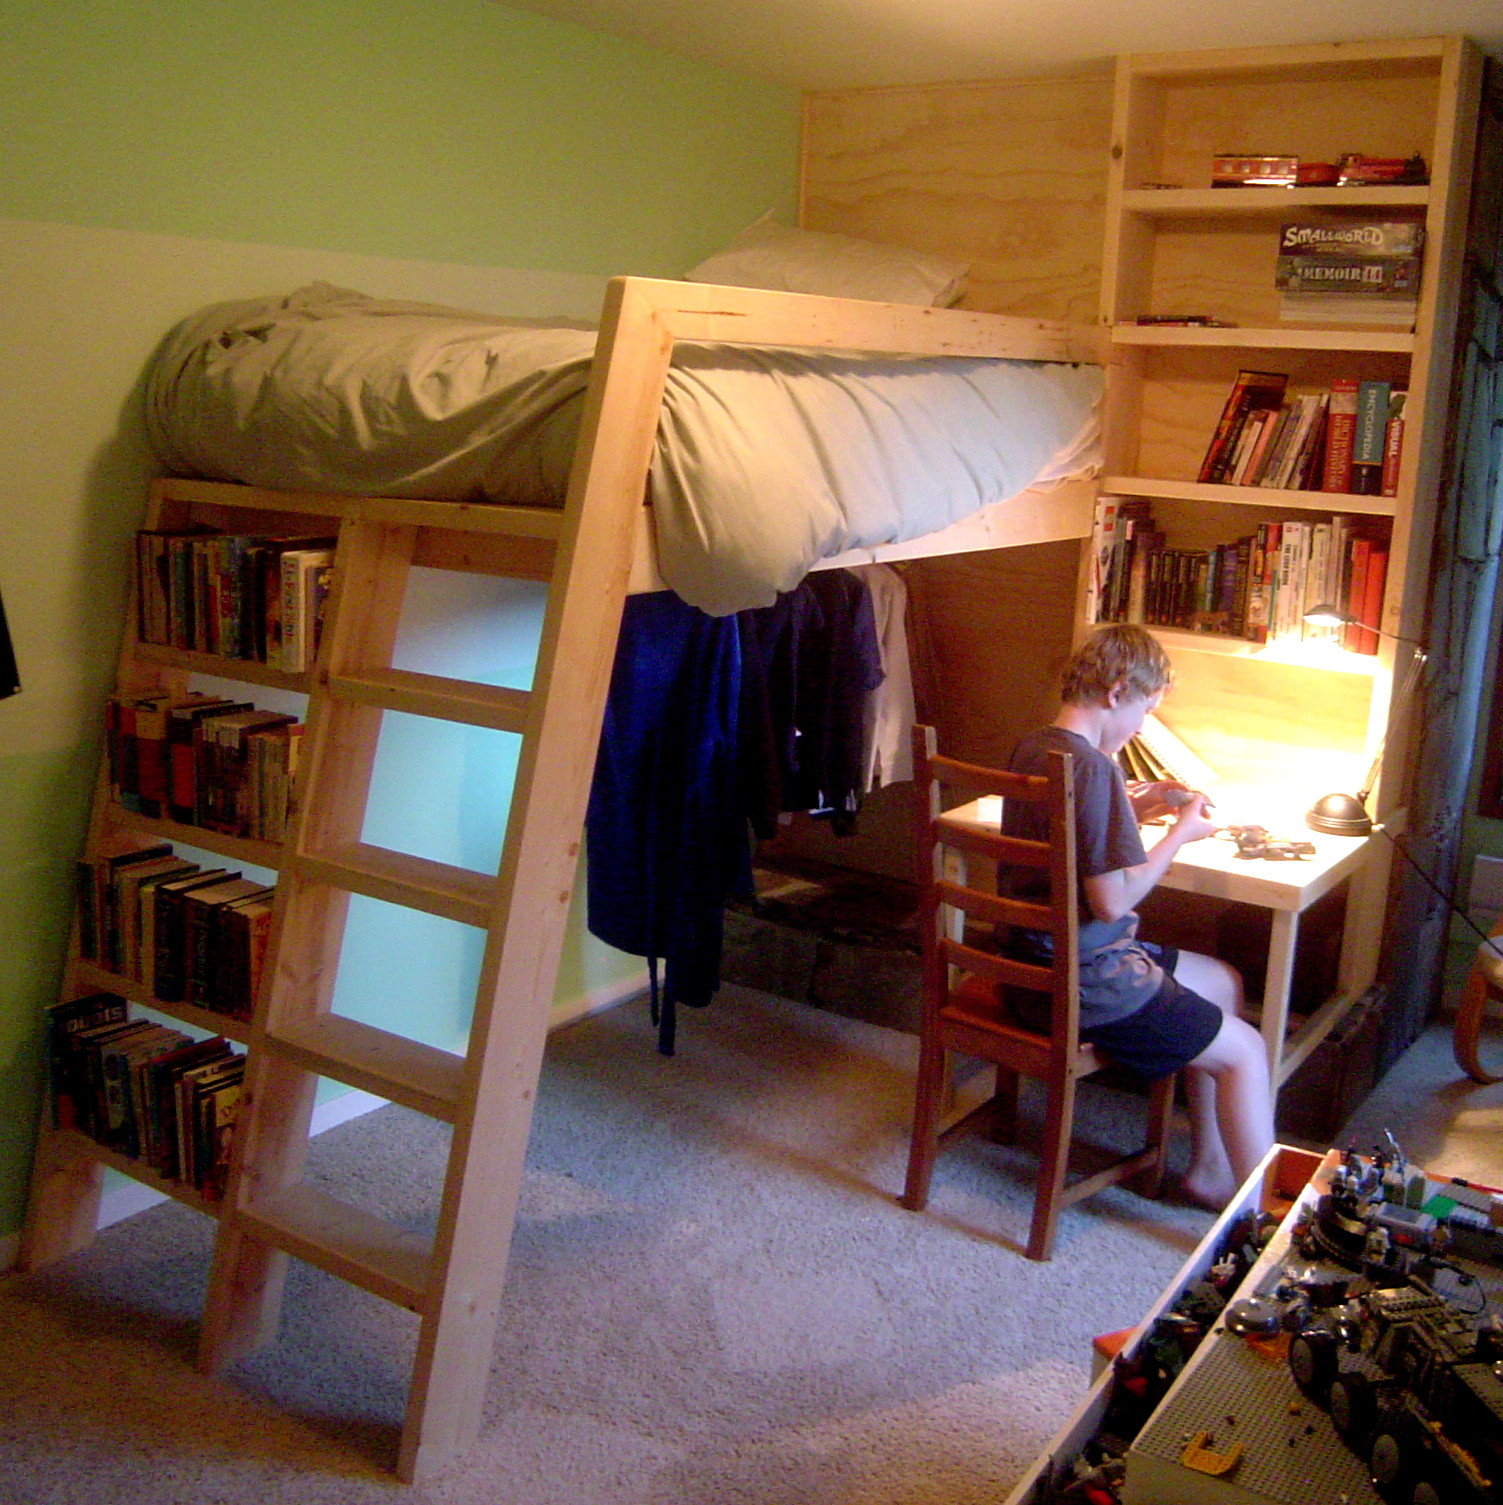 Best ideas about Lofted Bed DIY . Save or Pin Loft beds with bookshelf ladders Now.